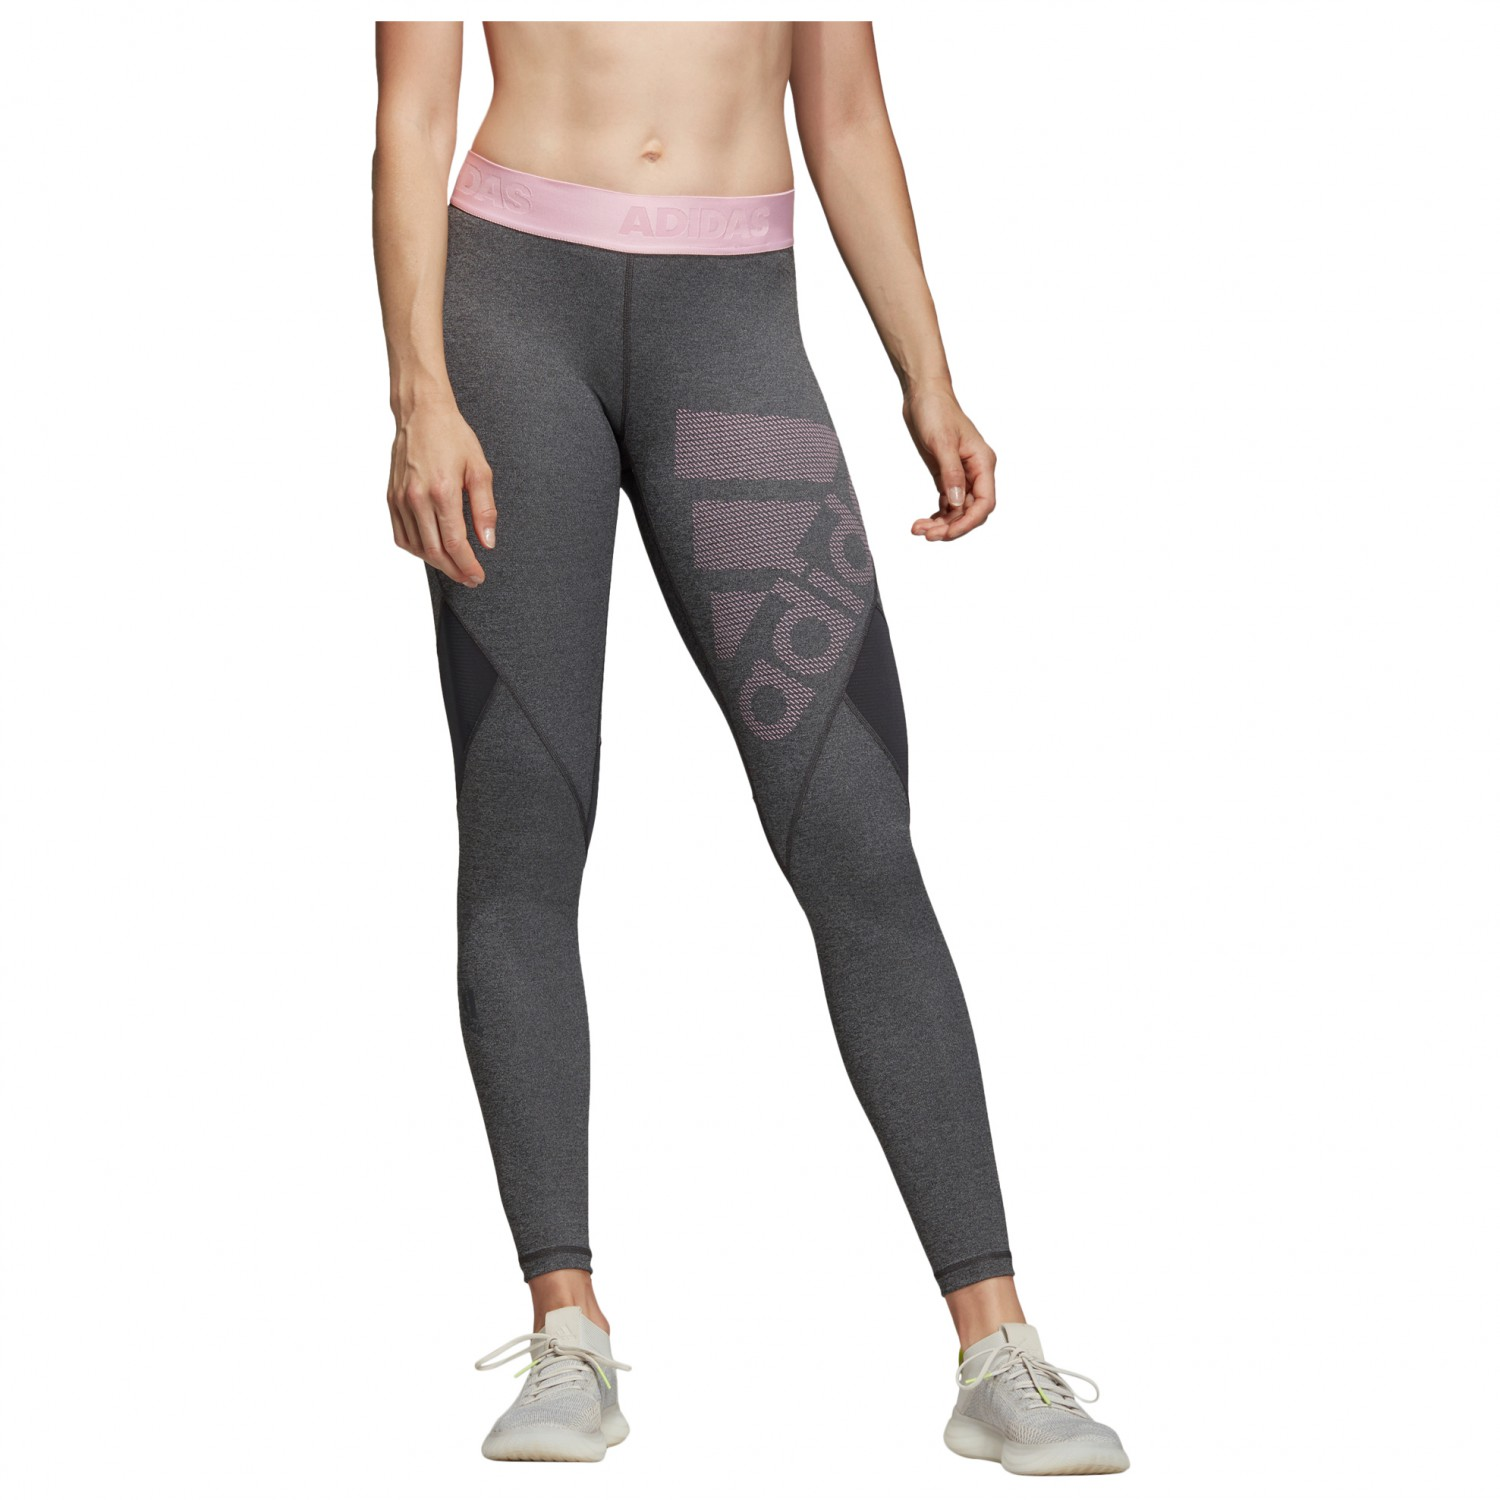 ... adidas - Women s Alphaskin Sport Tight LG - Pantalon de running ... 99a4595c83f